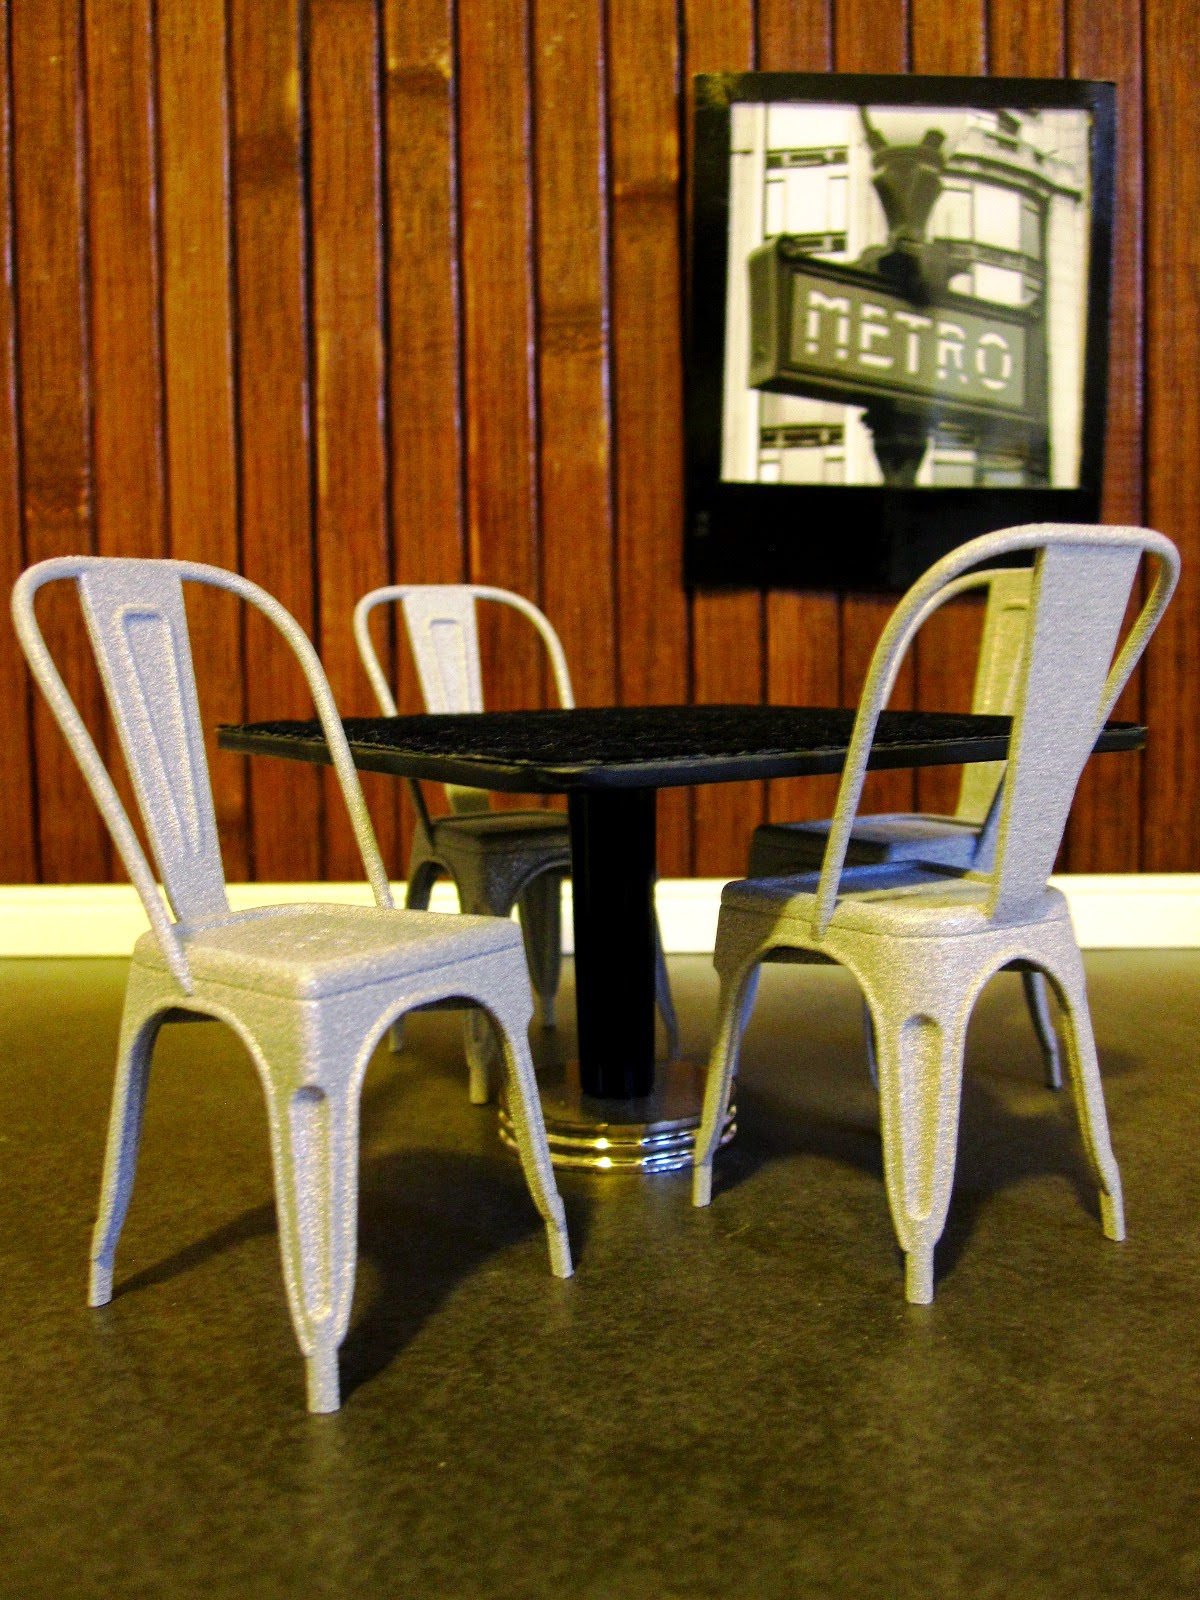 A dolls house miniature scene of four Xavier Pauchard Model A chairs around a cafe table.